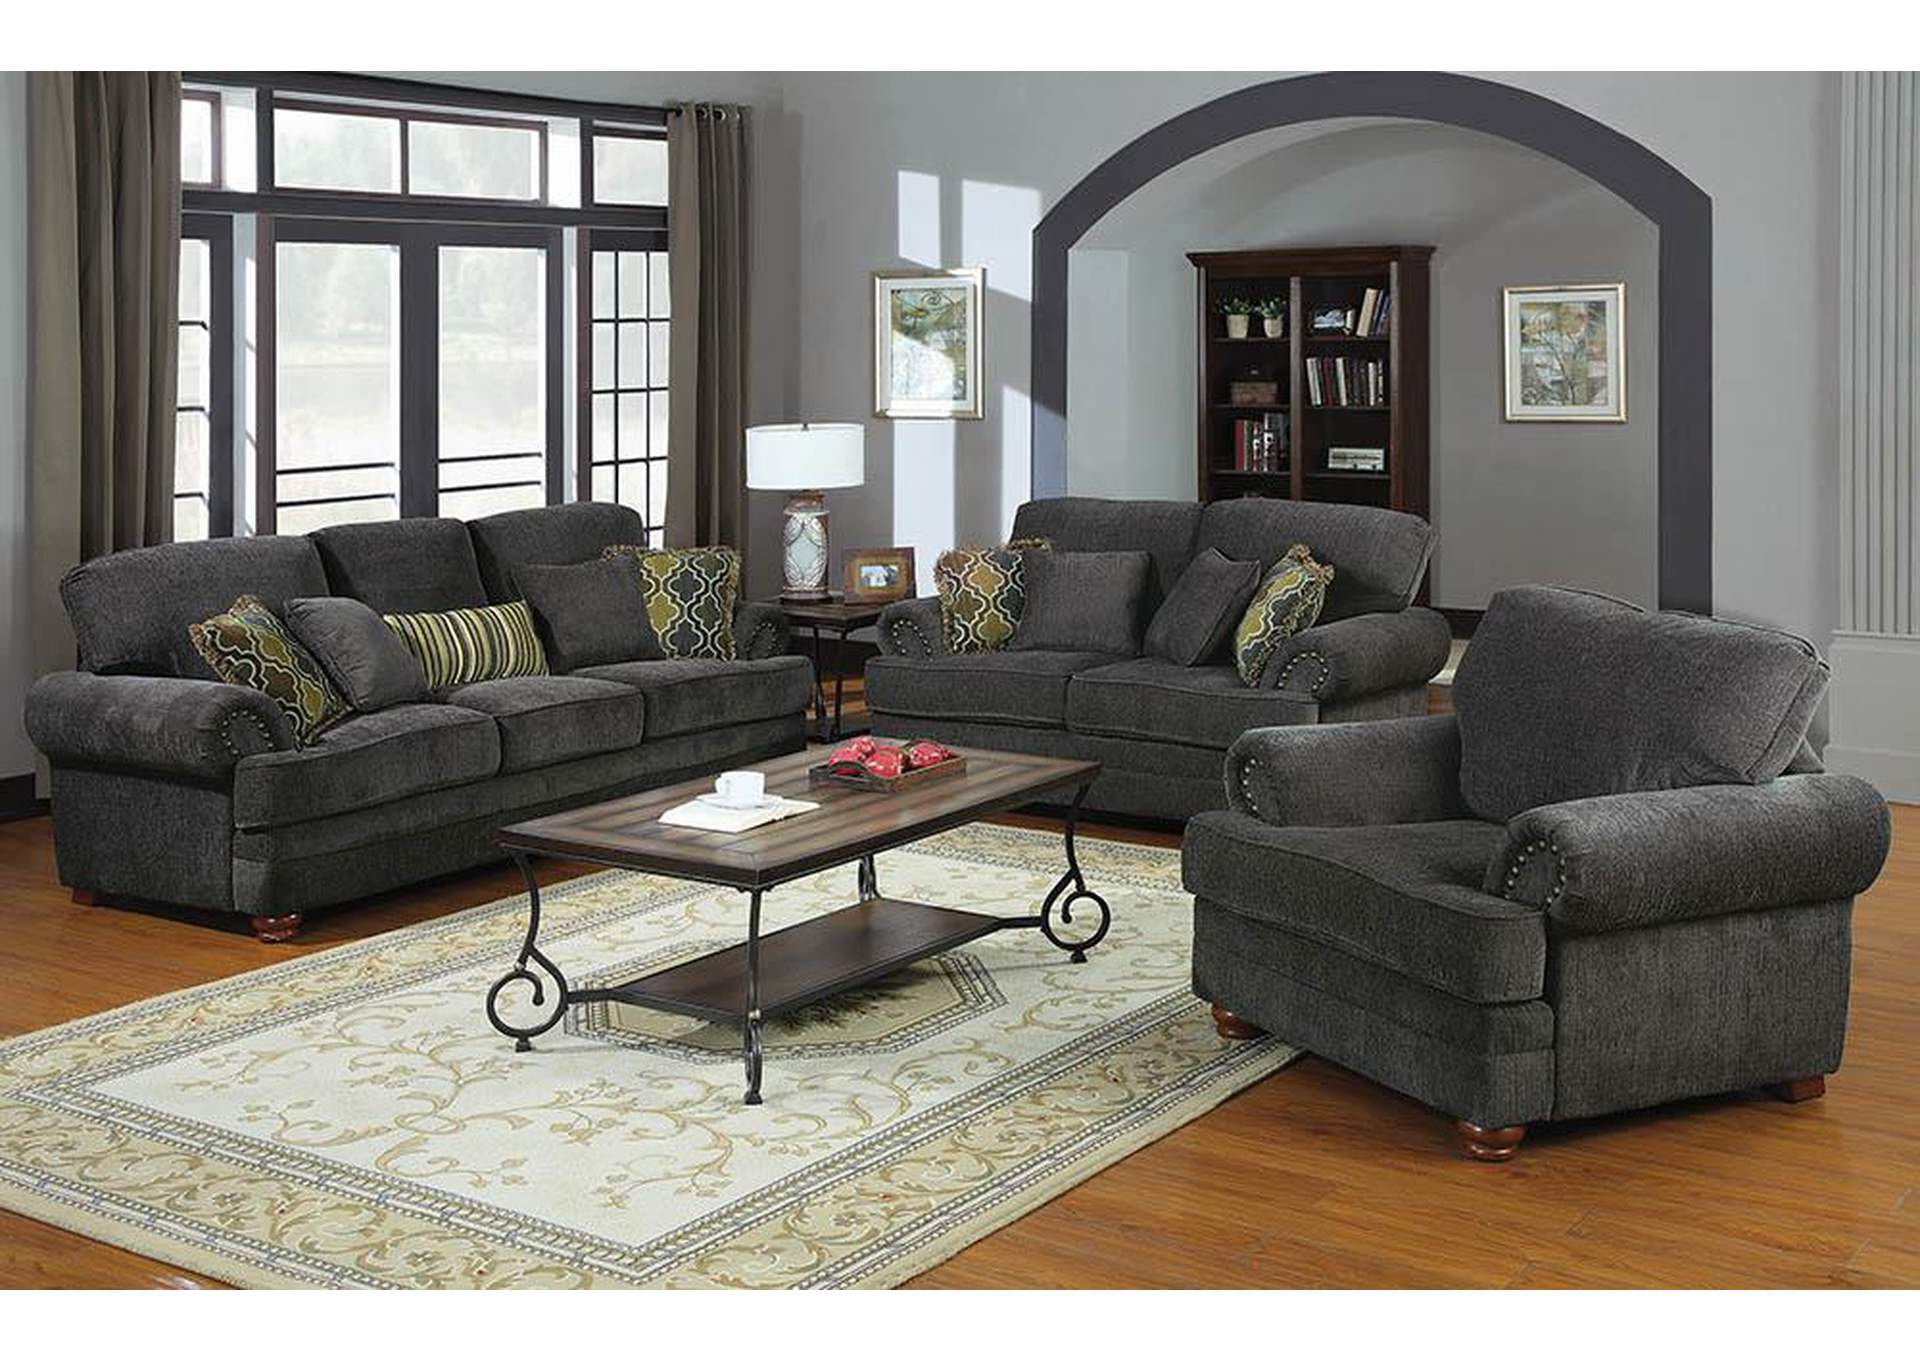 Austin 39 s couch potatoes furniture stores austin texas for Grey sofa and chair